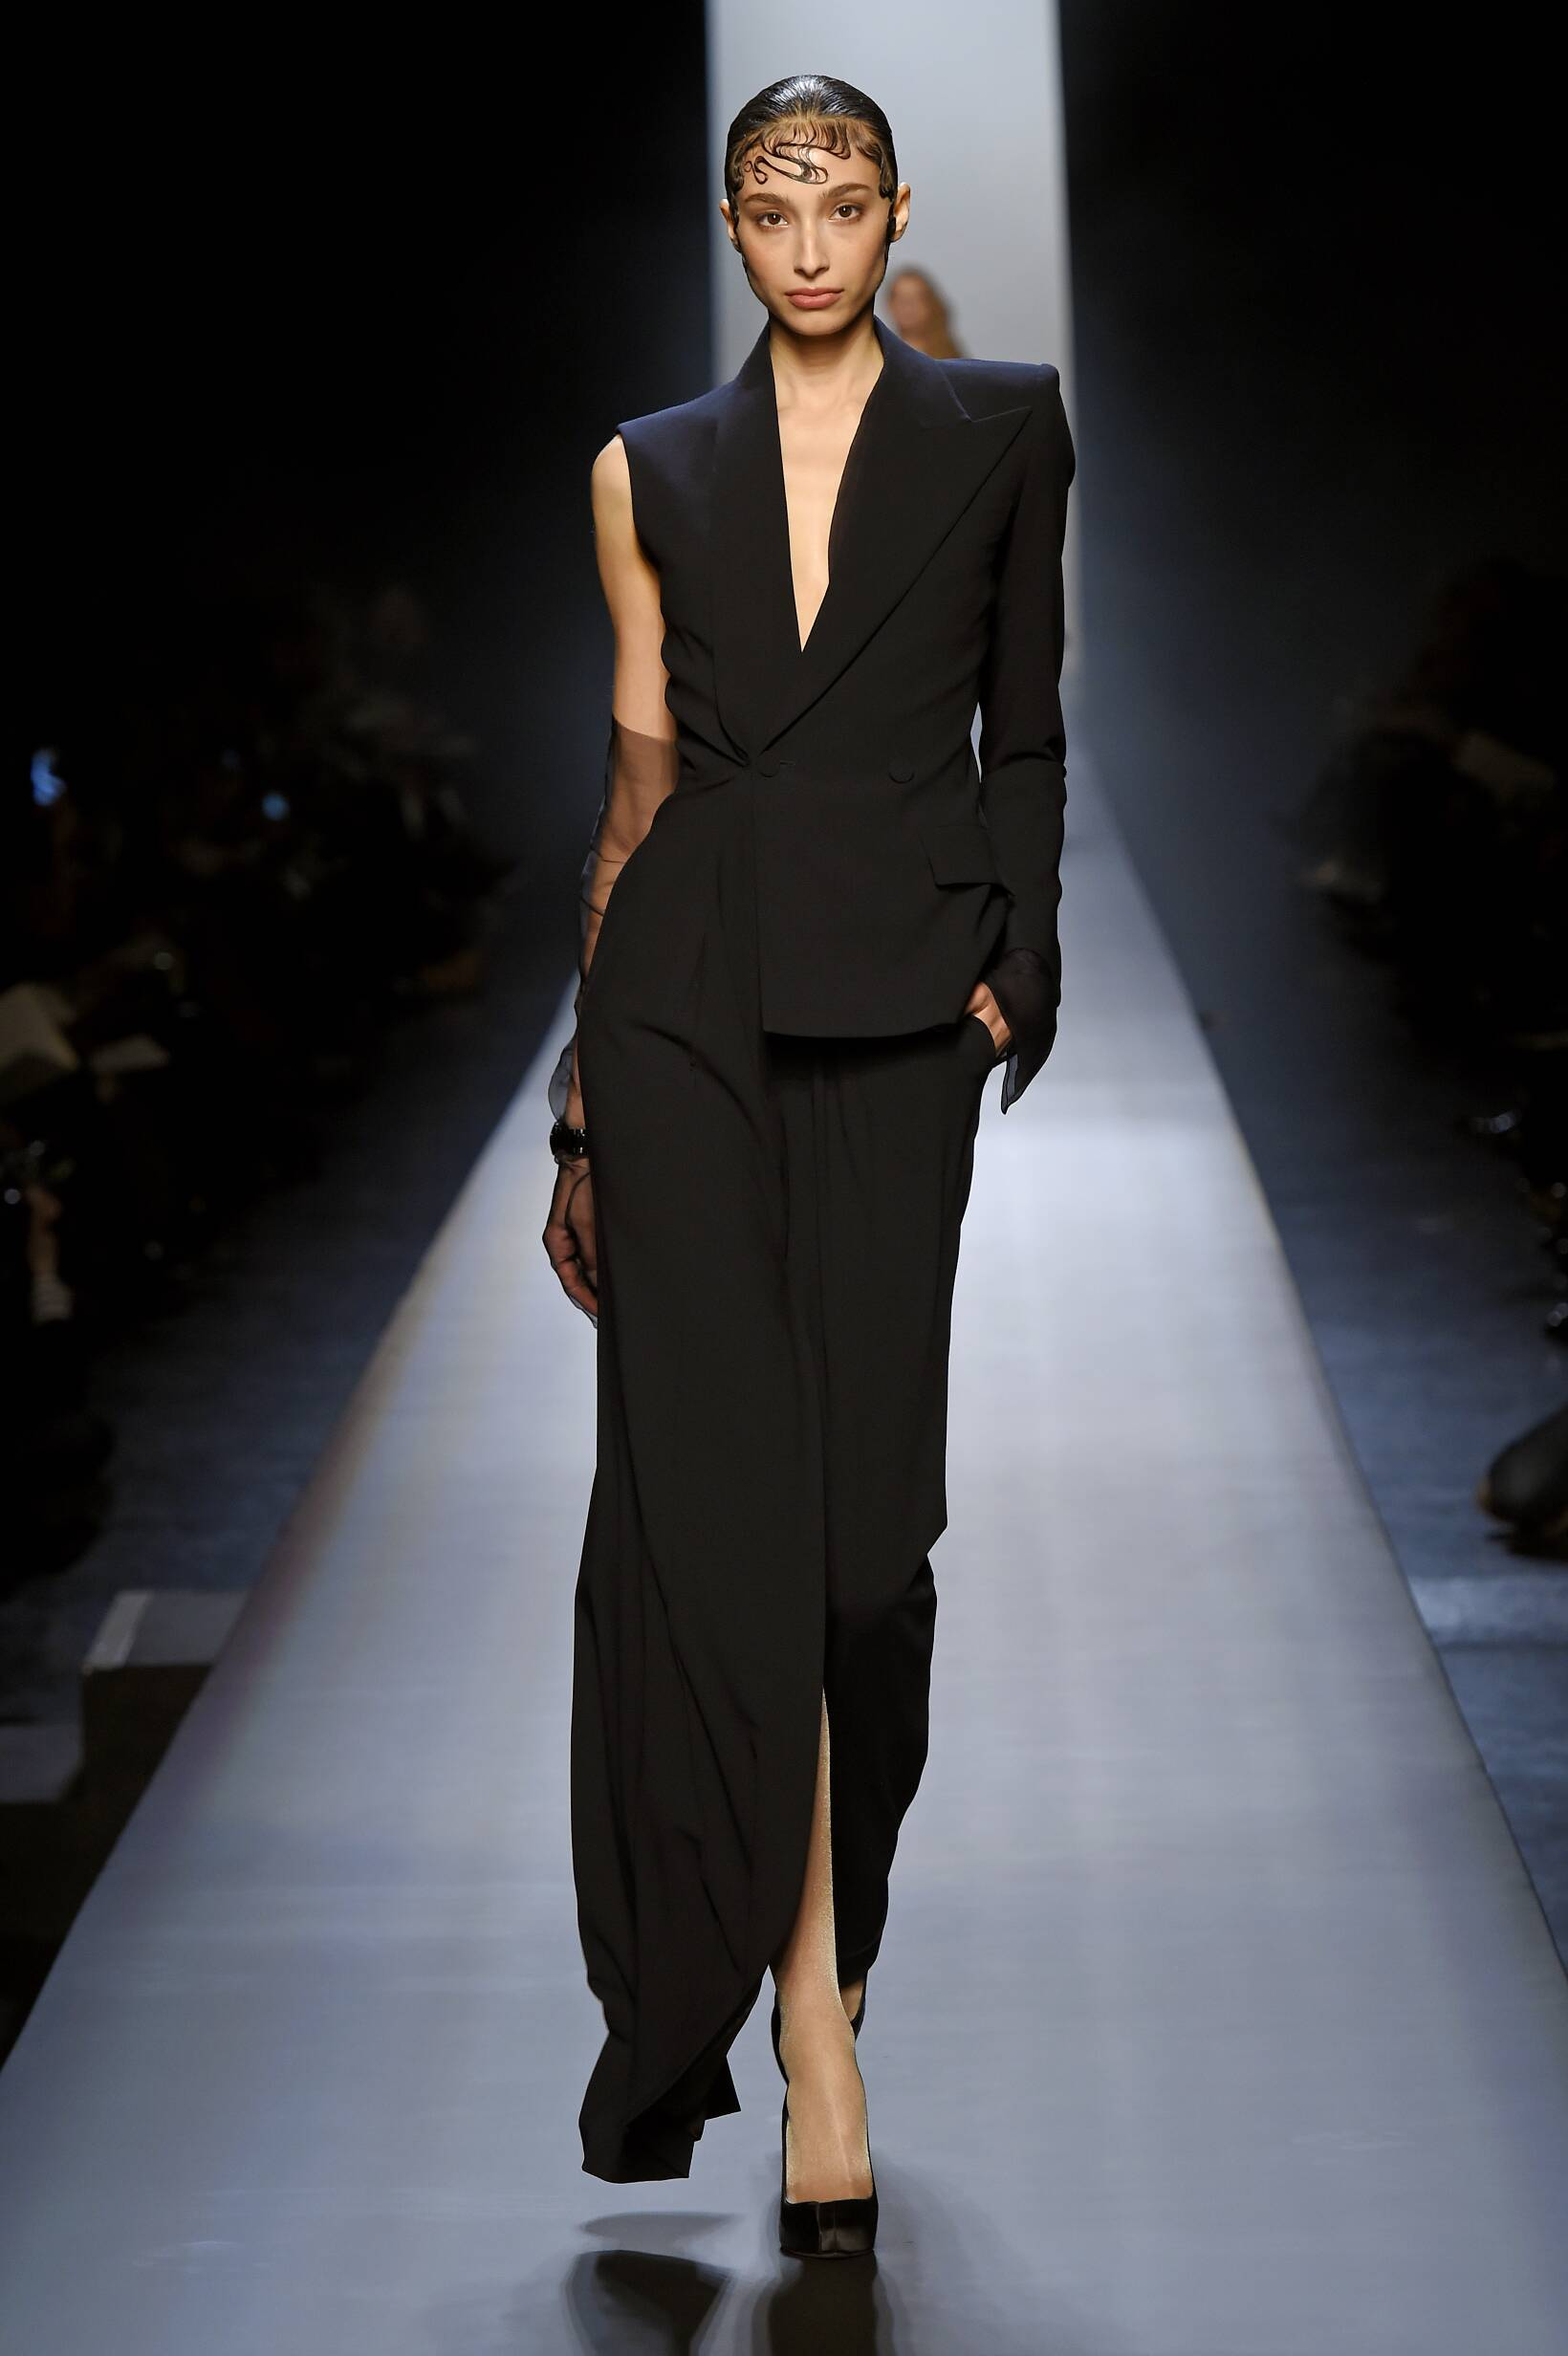 2015 Spring Fashion Woman Jean Paul Gaultier Haute Couture Collection